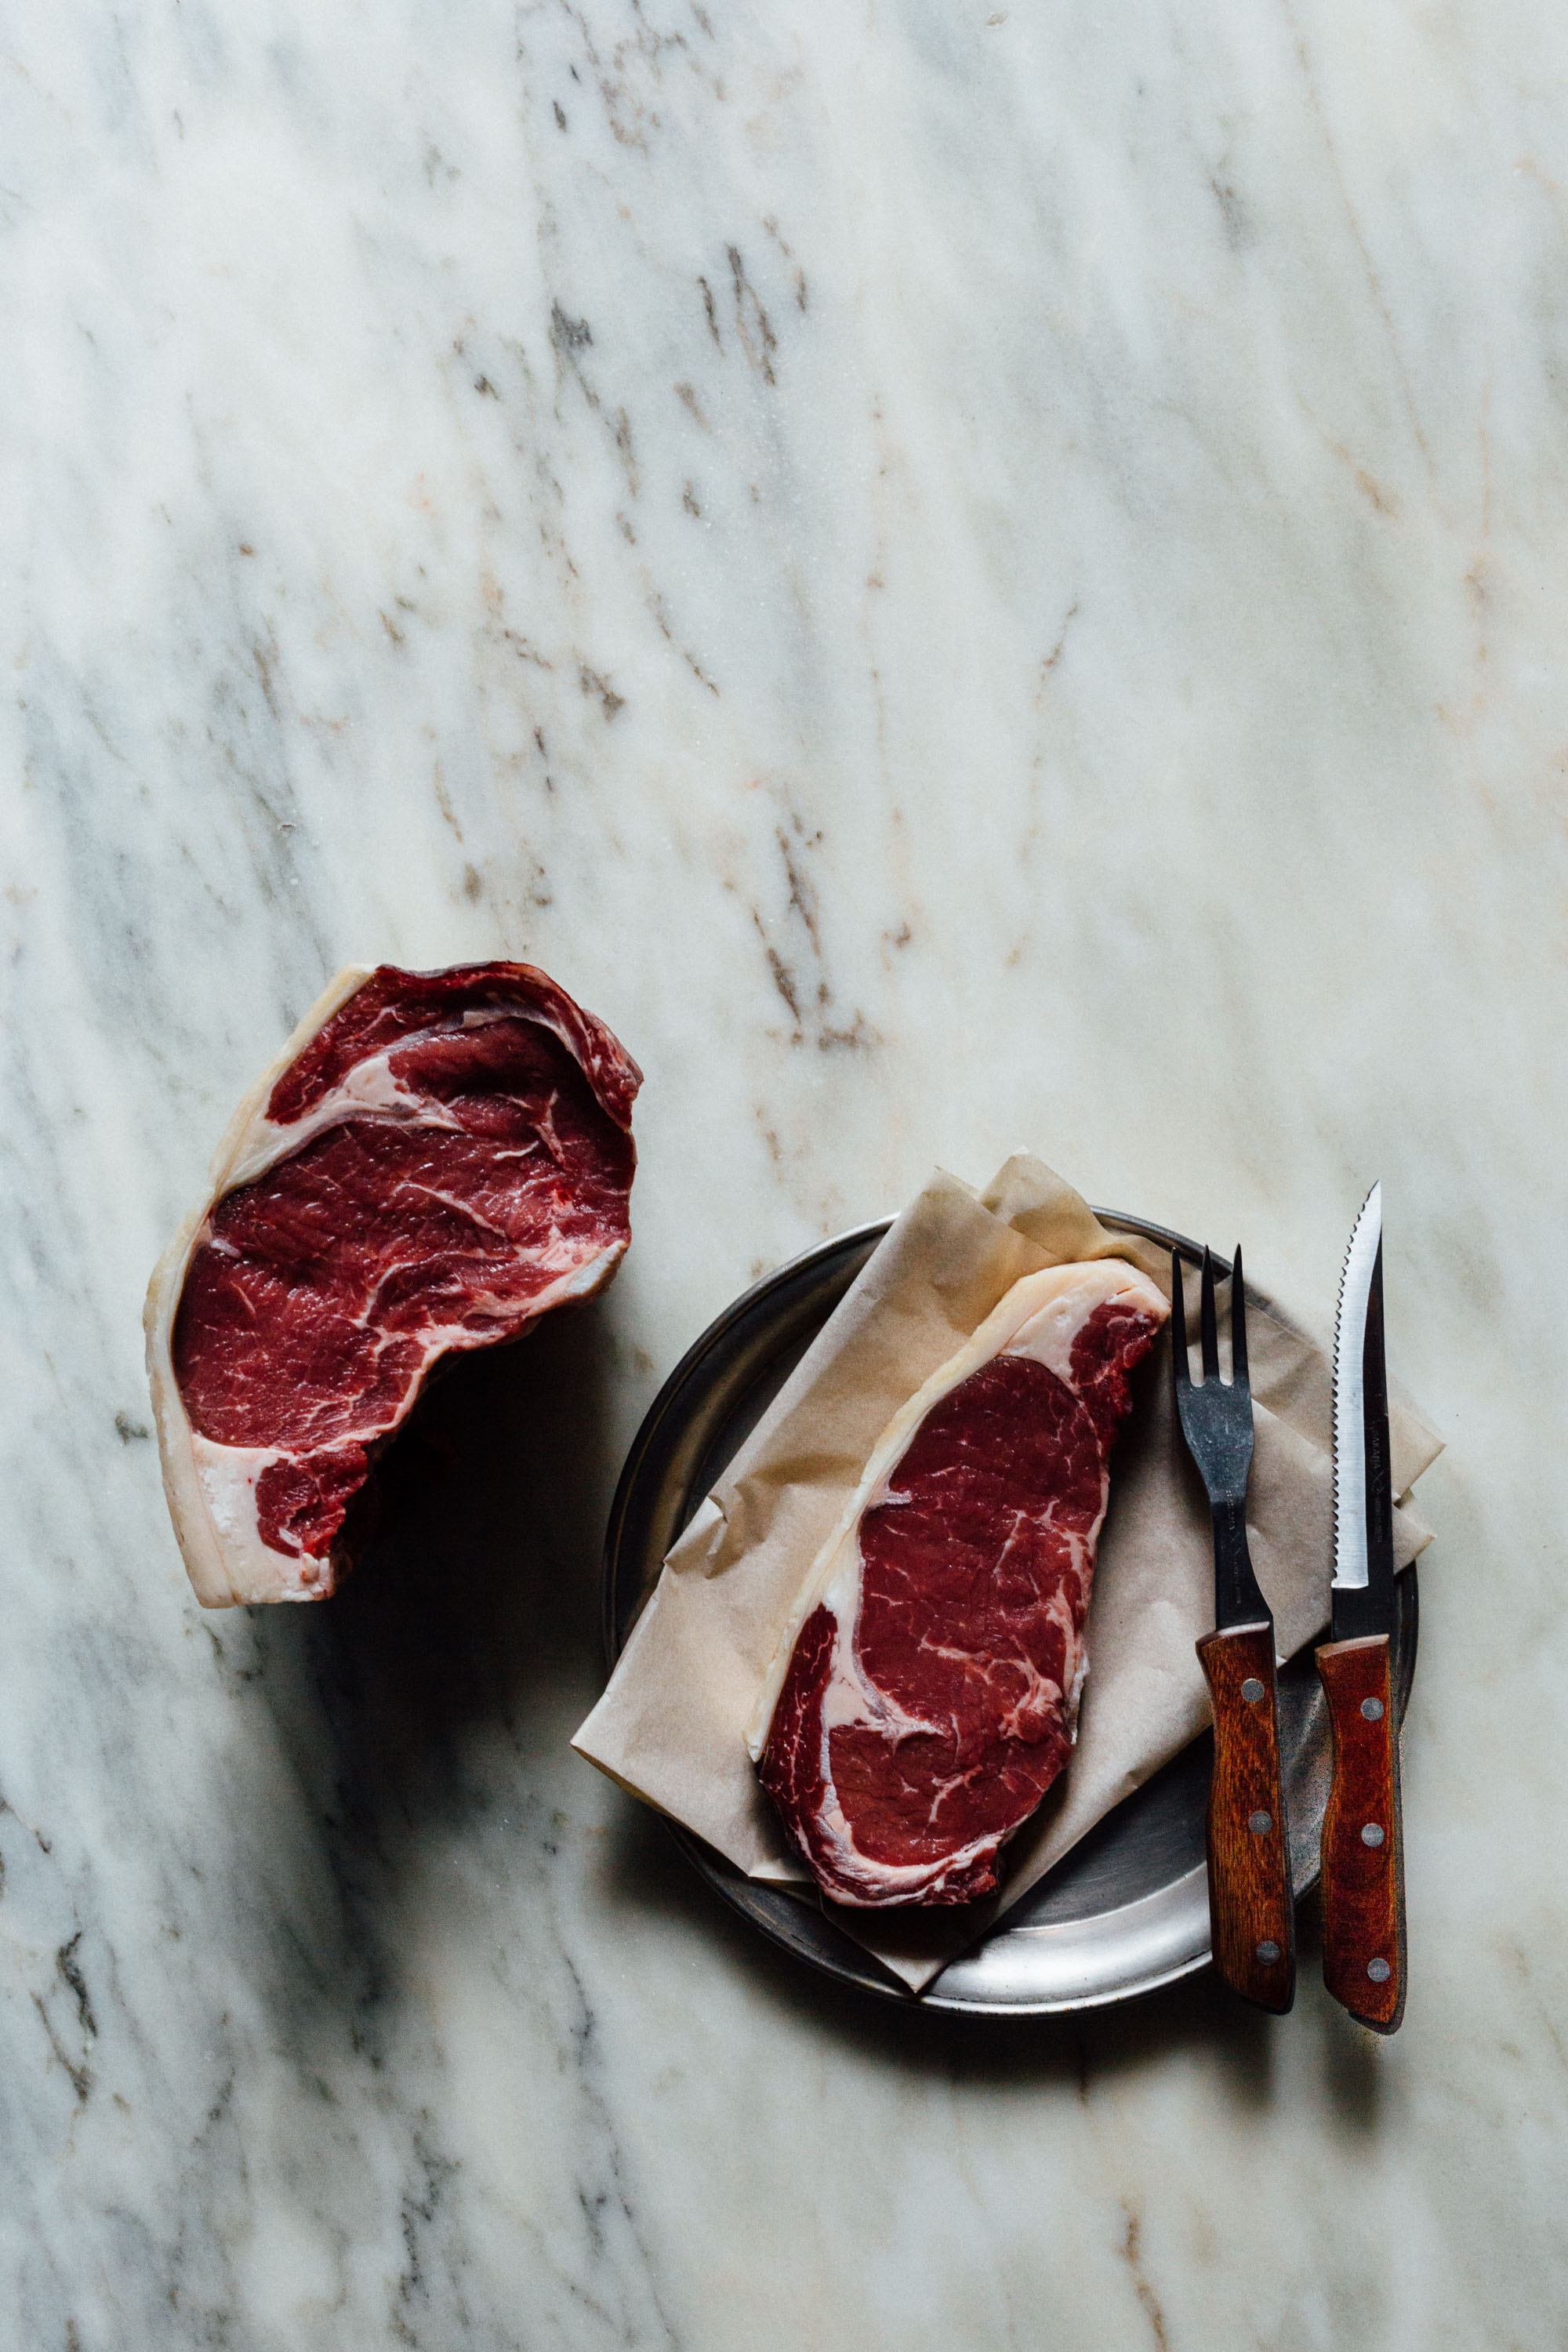 Marnie Hawson, Melbourne food photographer, for The Organic Meat Specialist